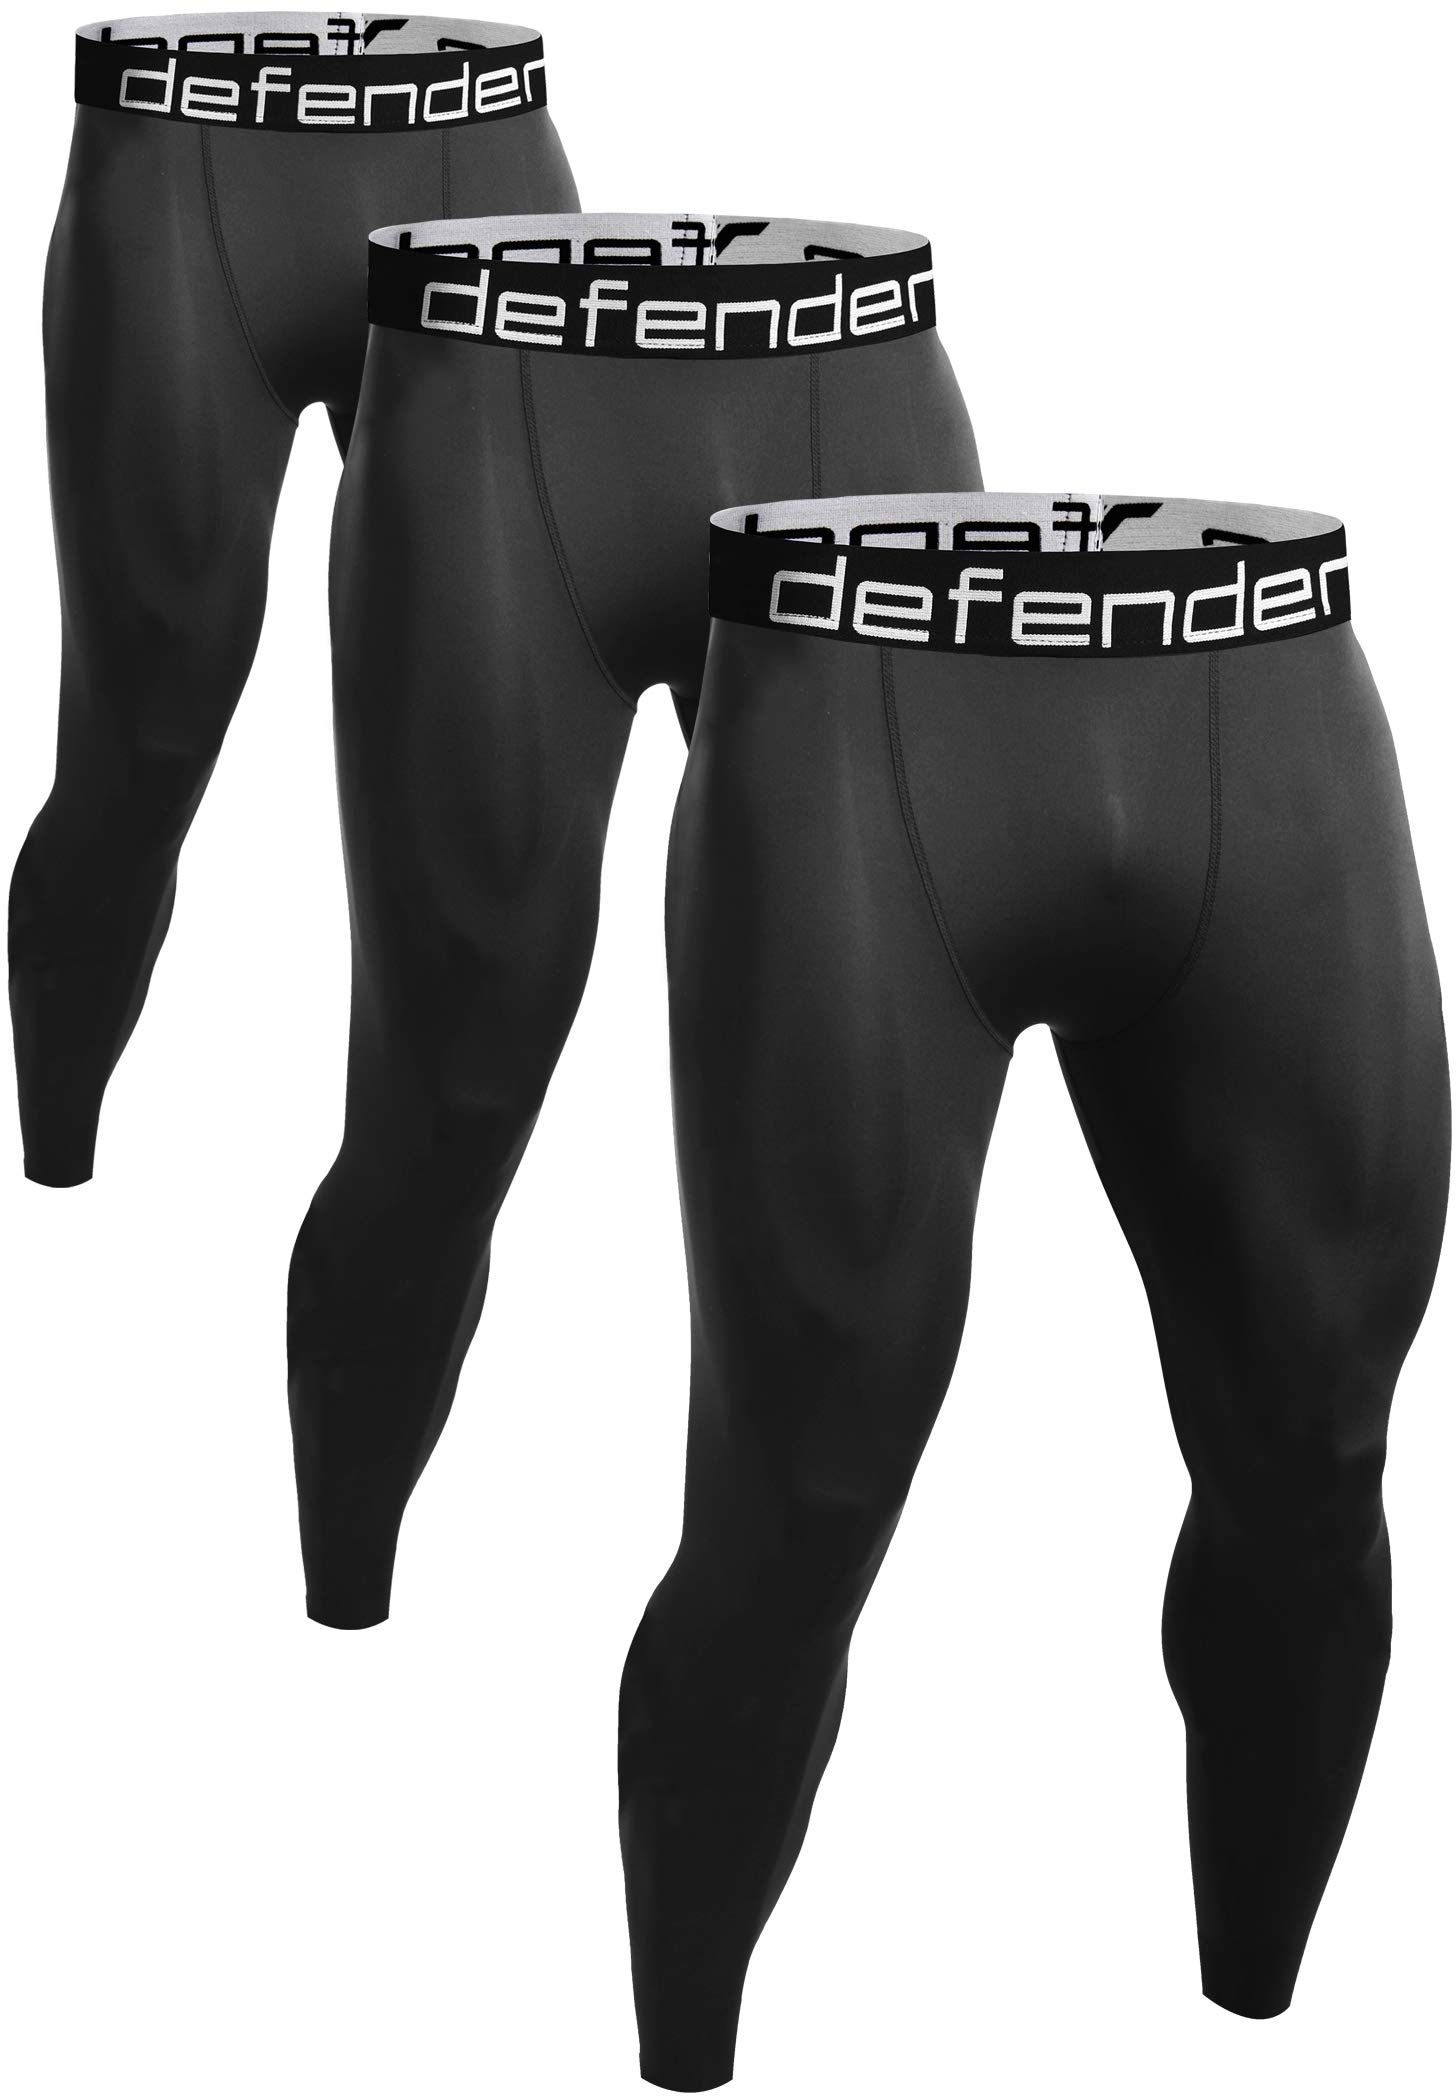 Defender Men's 3 Pack Sports Compression Pants Tights Inner Fits Hockey 3ABB_L by Defender